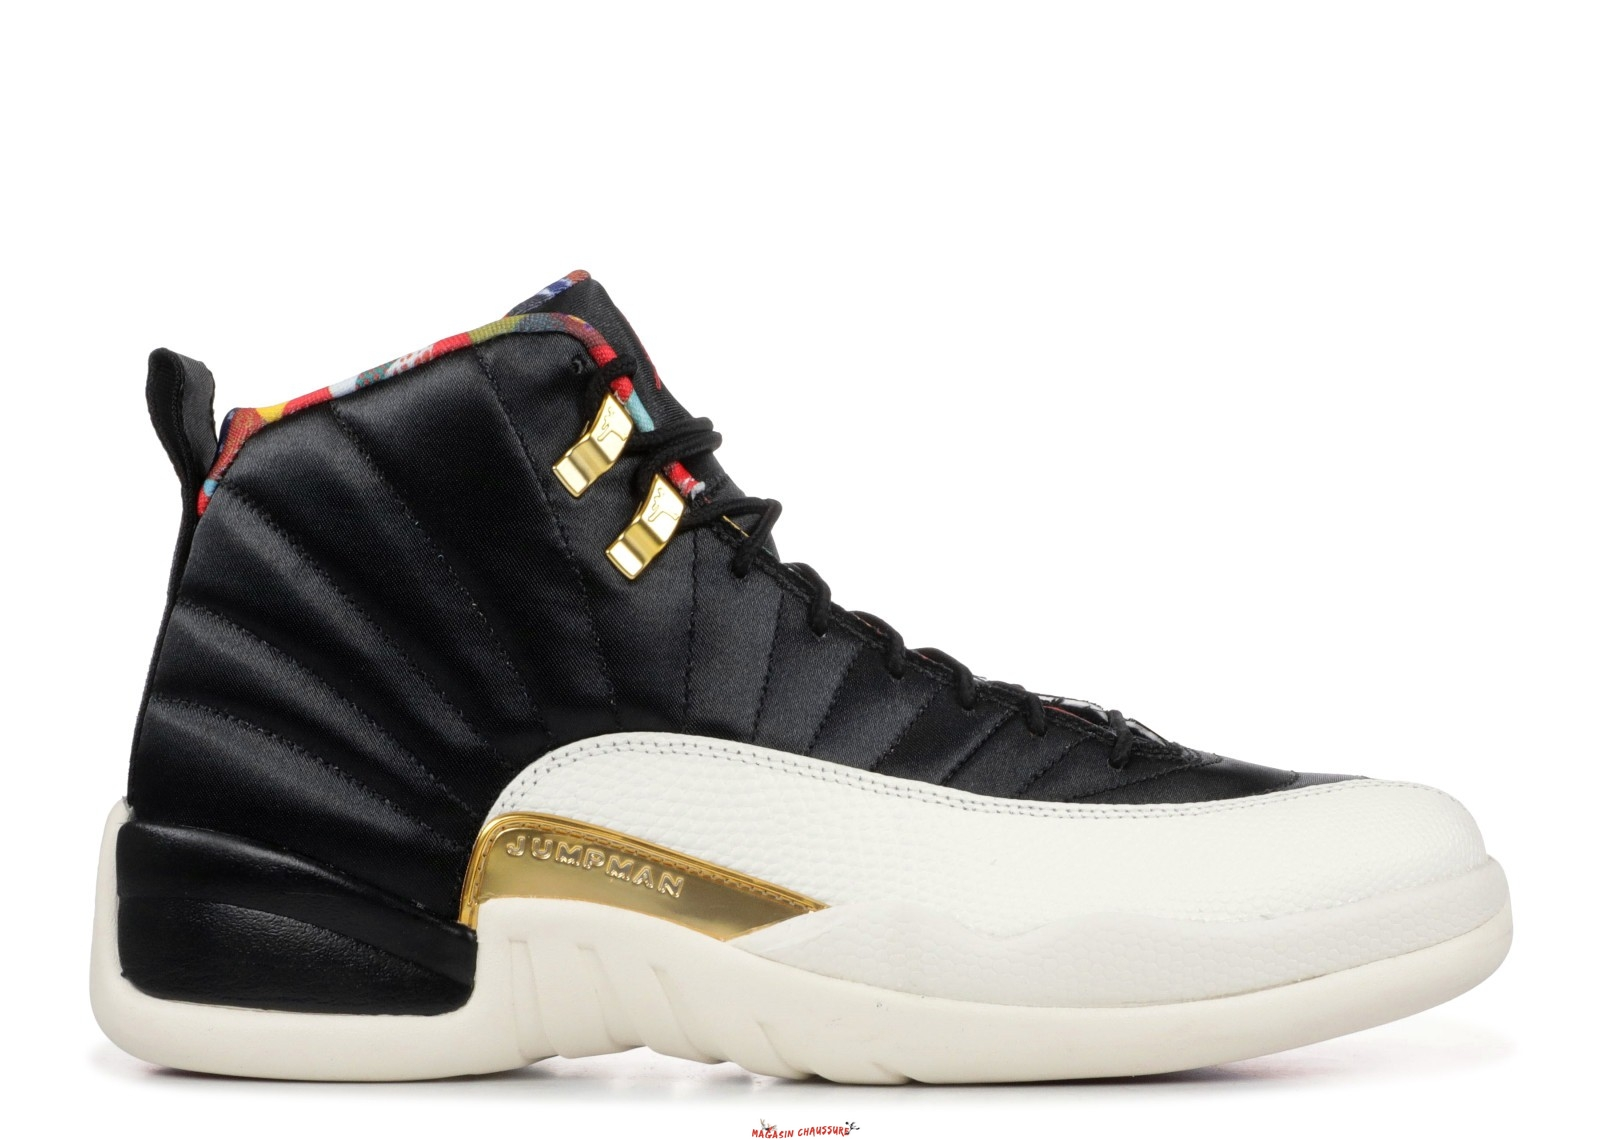 Air Jordan 12 - Homme Retro Cny Chinese New Year Noir (CI2977-006) Chaussure de Basket